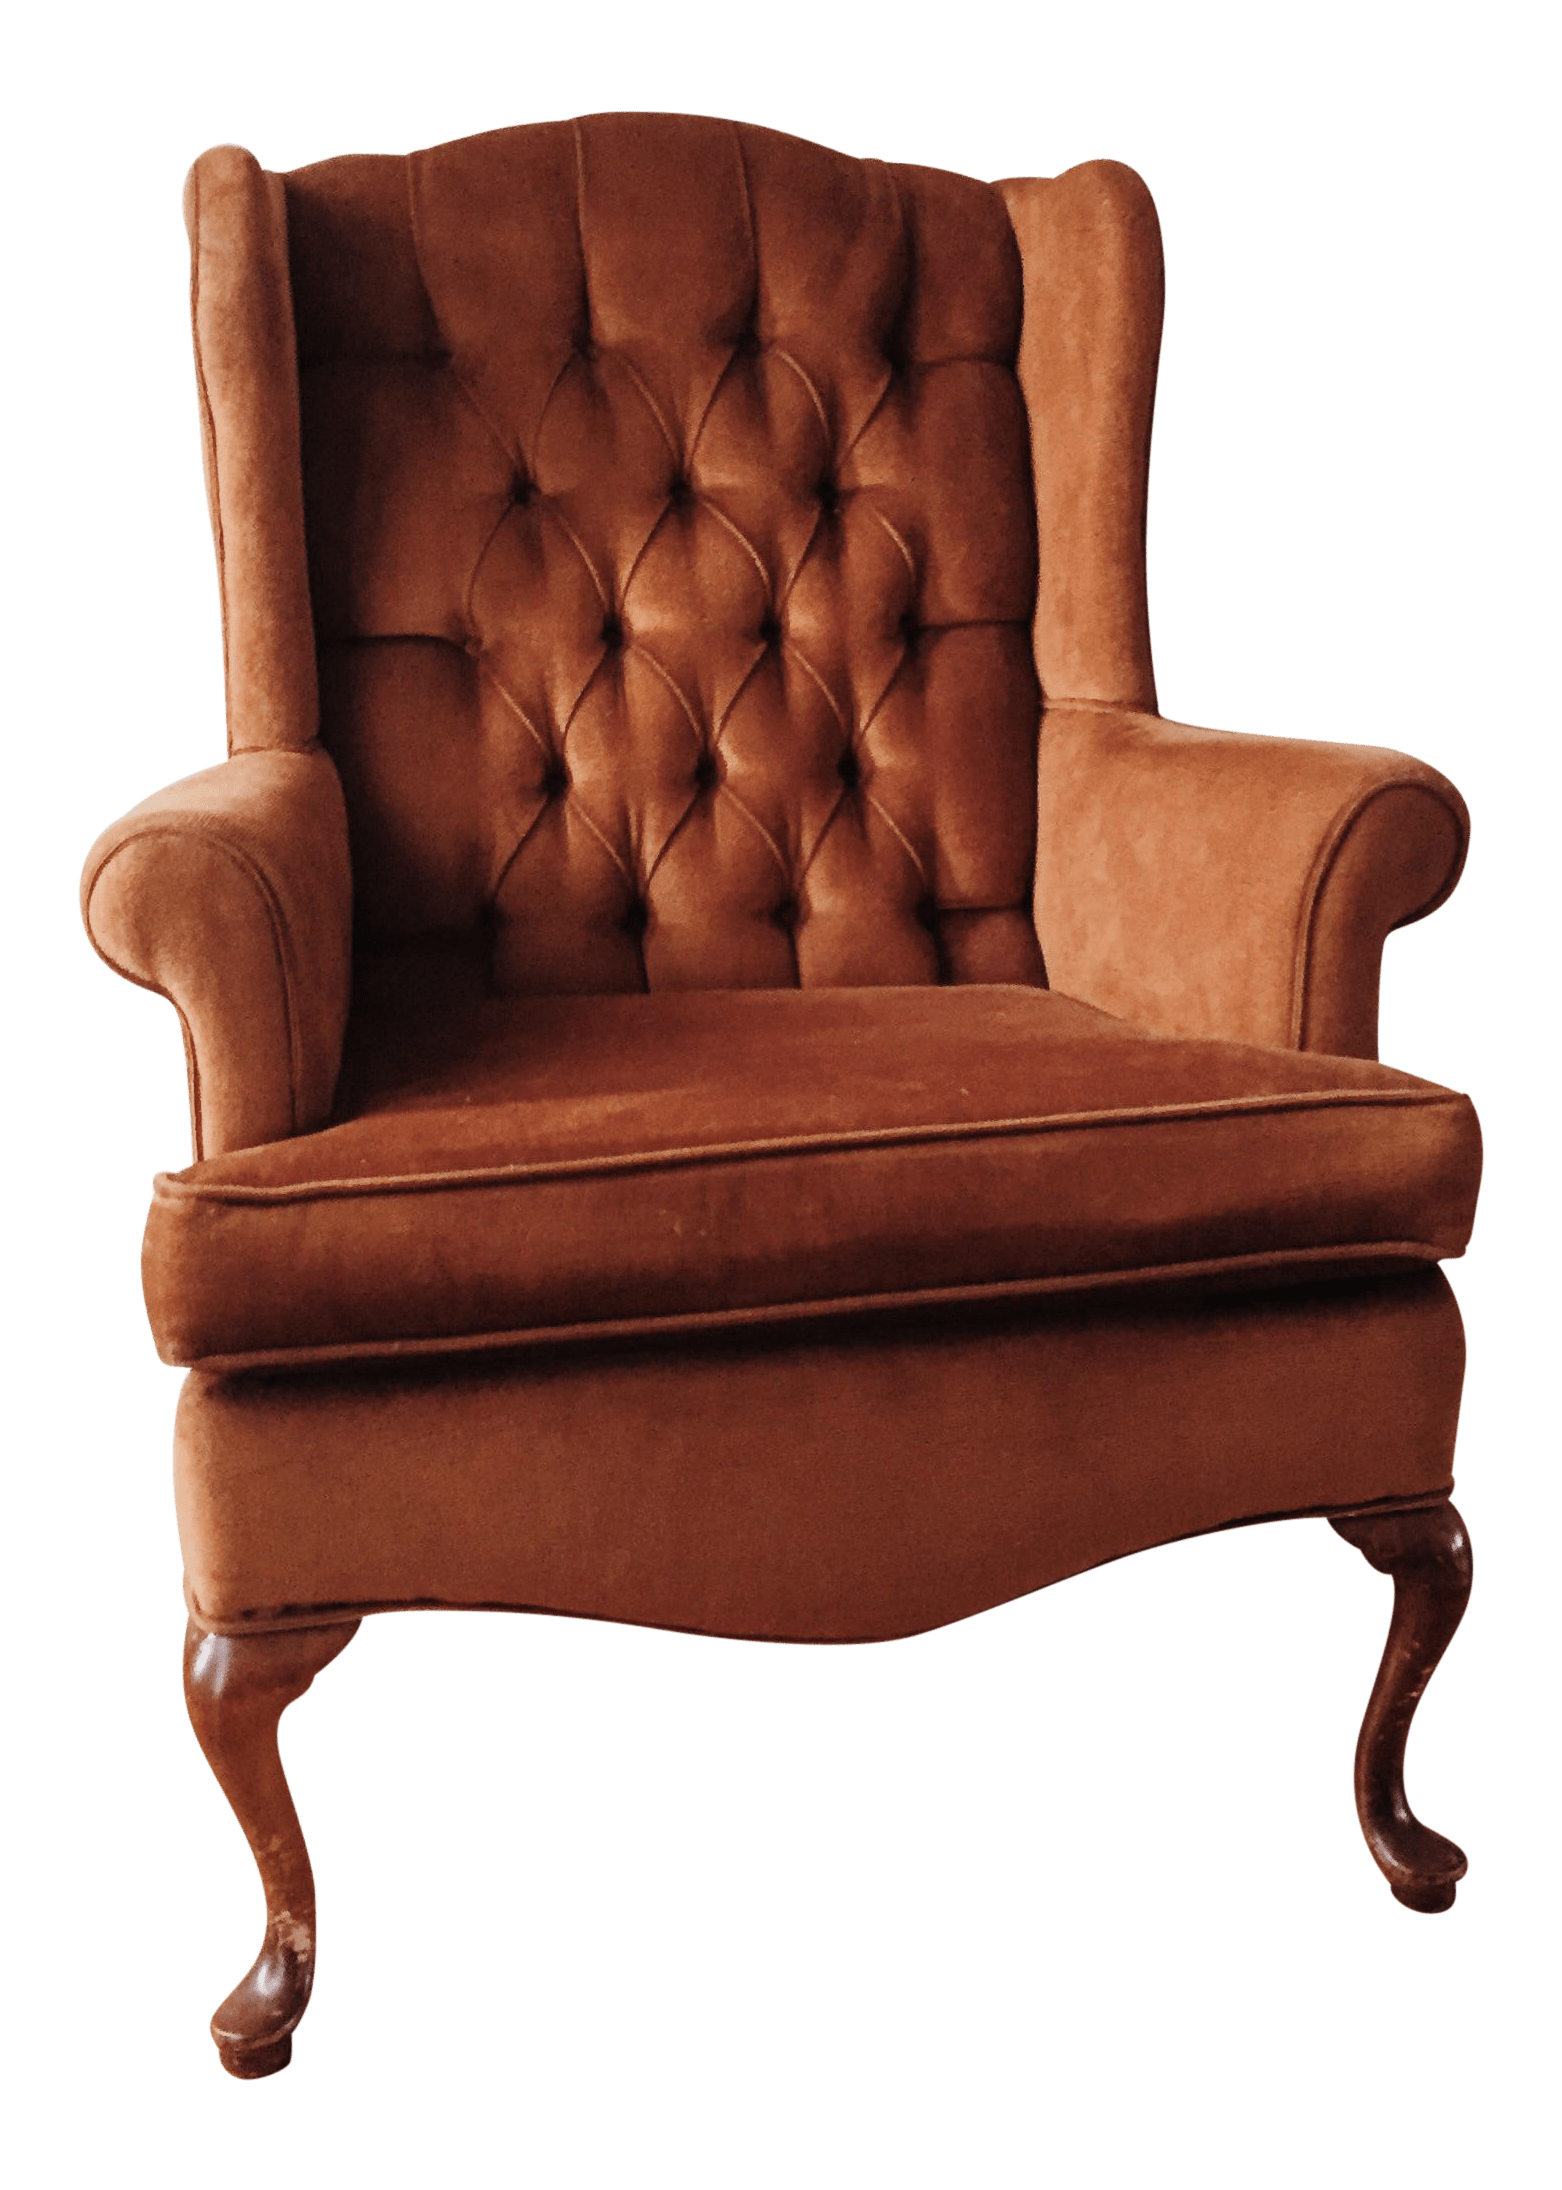 Orange Wingback Chair Mid Century Burnt Orange Wing Back Chair Chairish